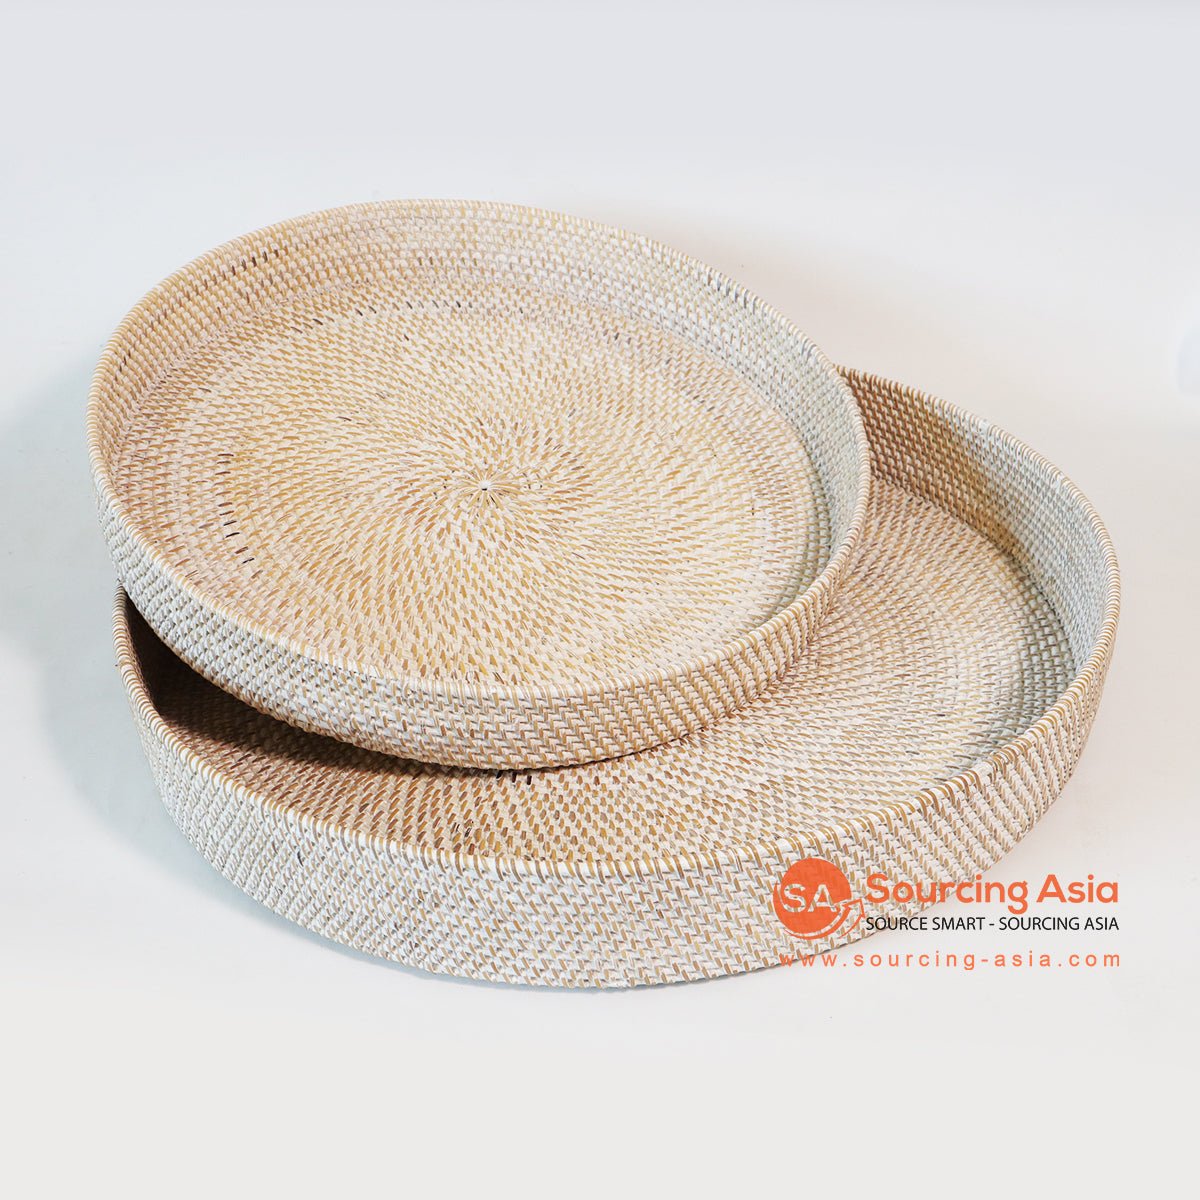 MTIC074 SET OF 2 RATTAN TRAYS